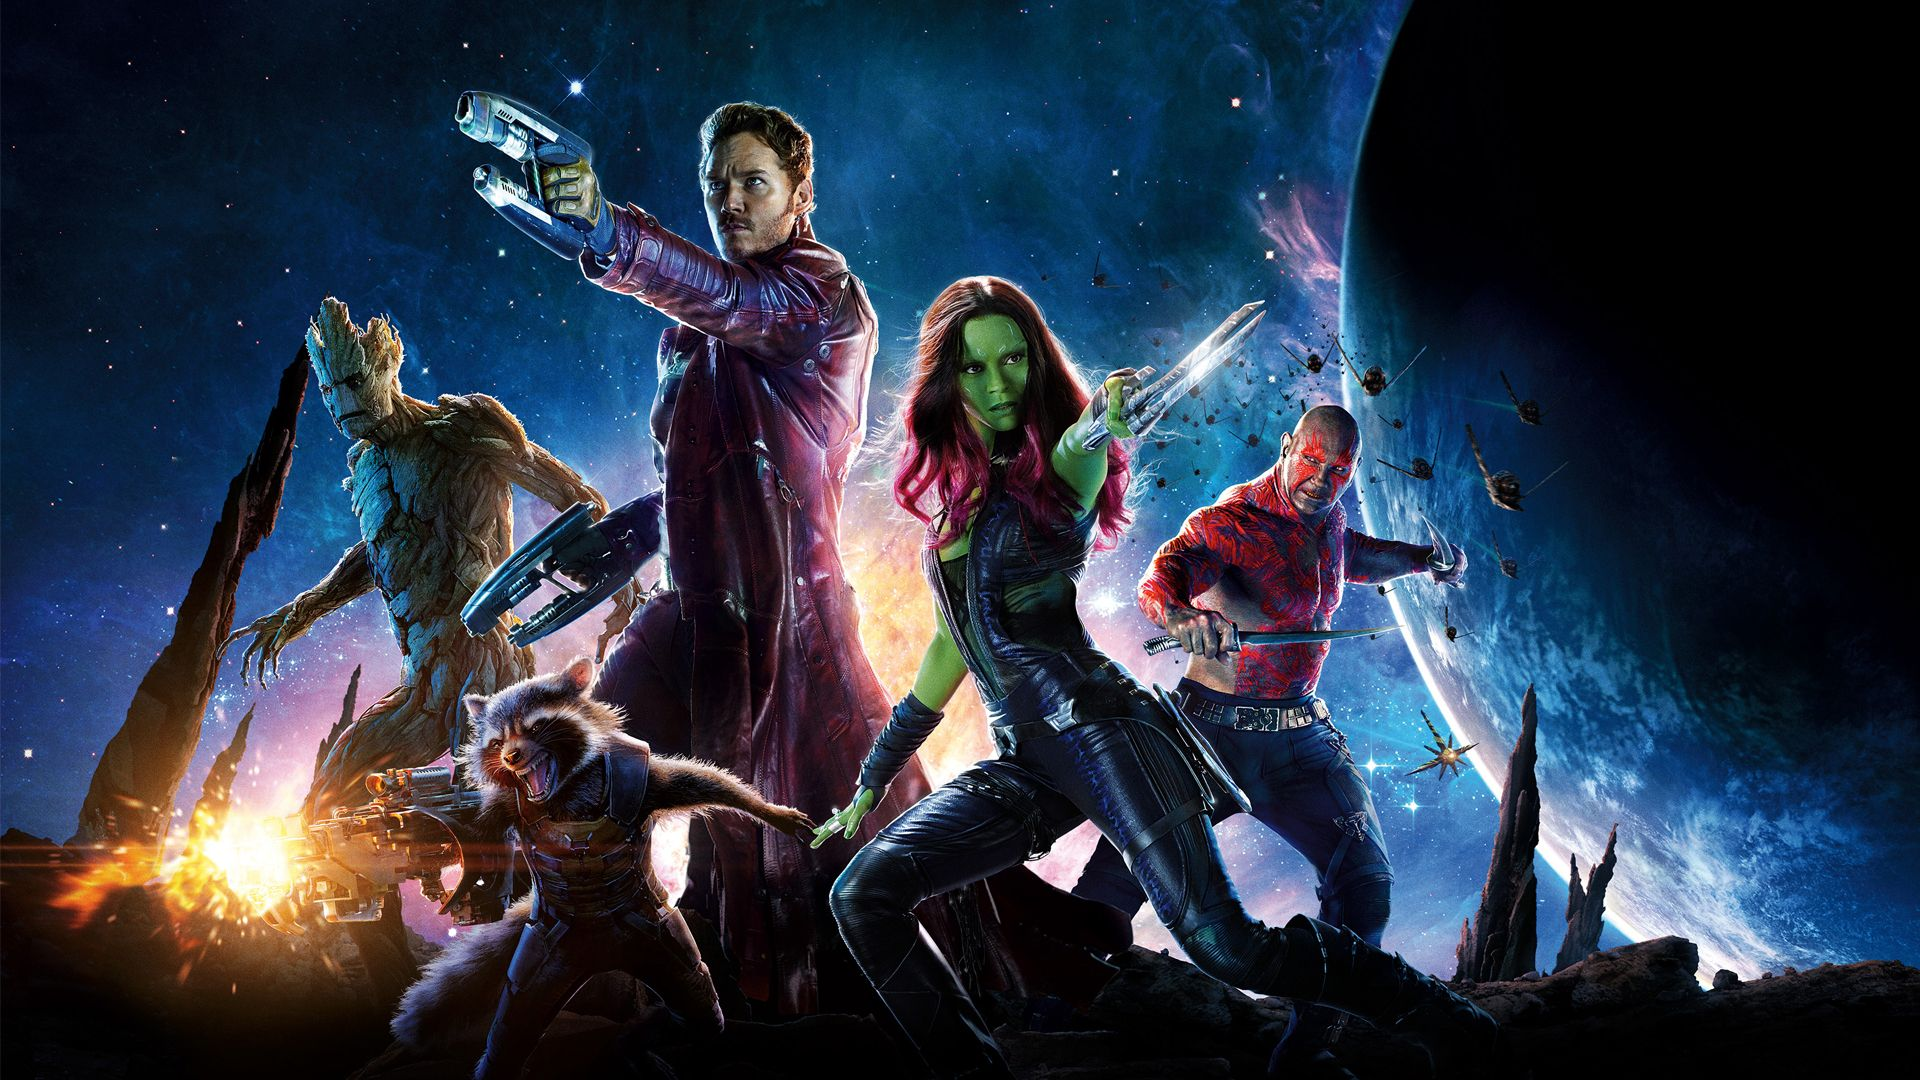 Robert Downey Jr Says Guardians Of The Galaxy is The 1920x1080